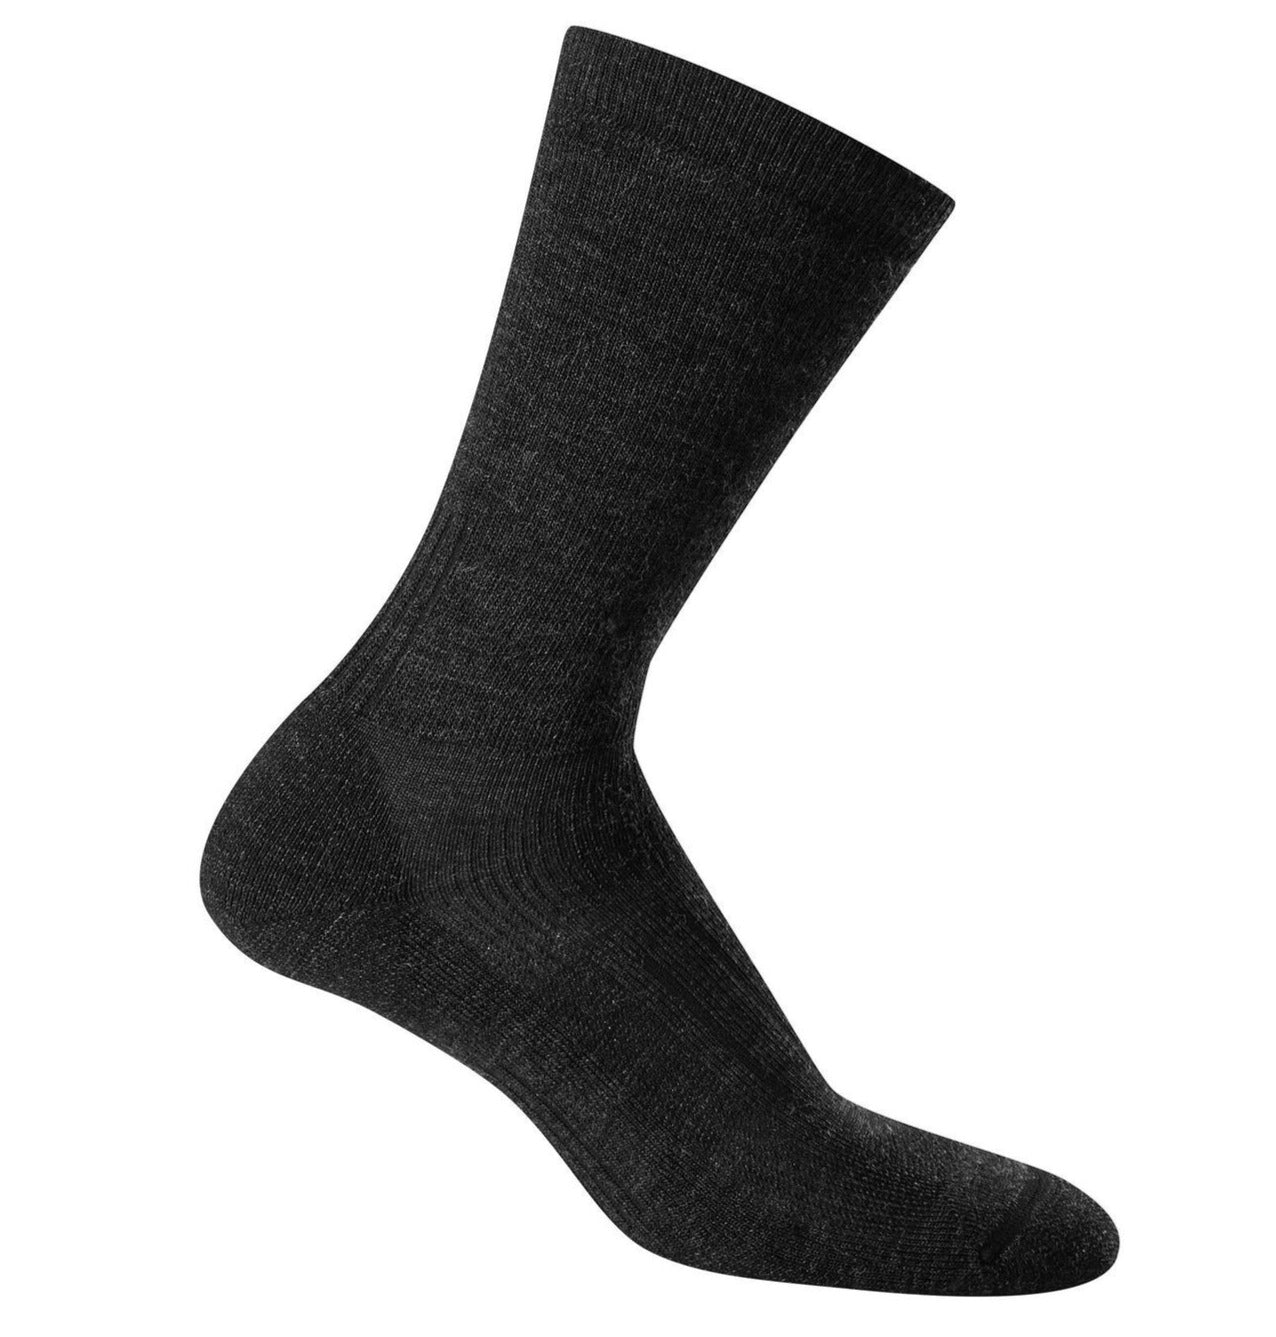 Icebreaker Hike Medium Crew Socks (Men's) SS20 - Jet Heather - Find Your Feet Australia Hobart Launceston Tasmania